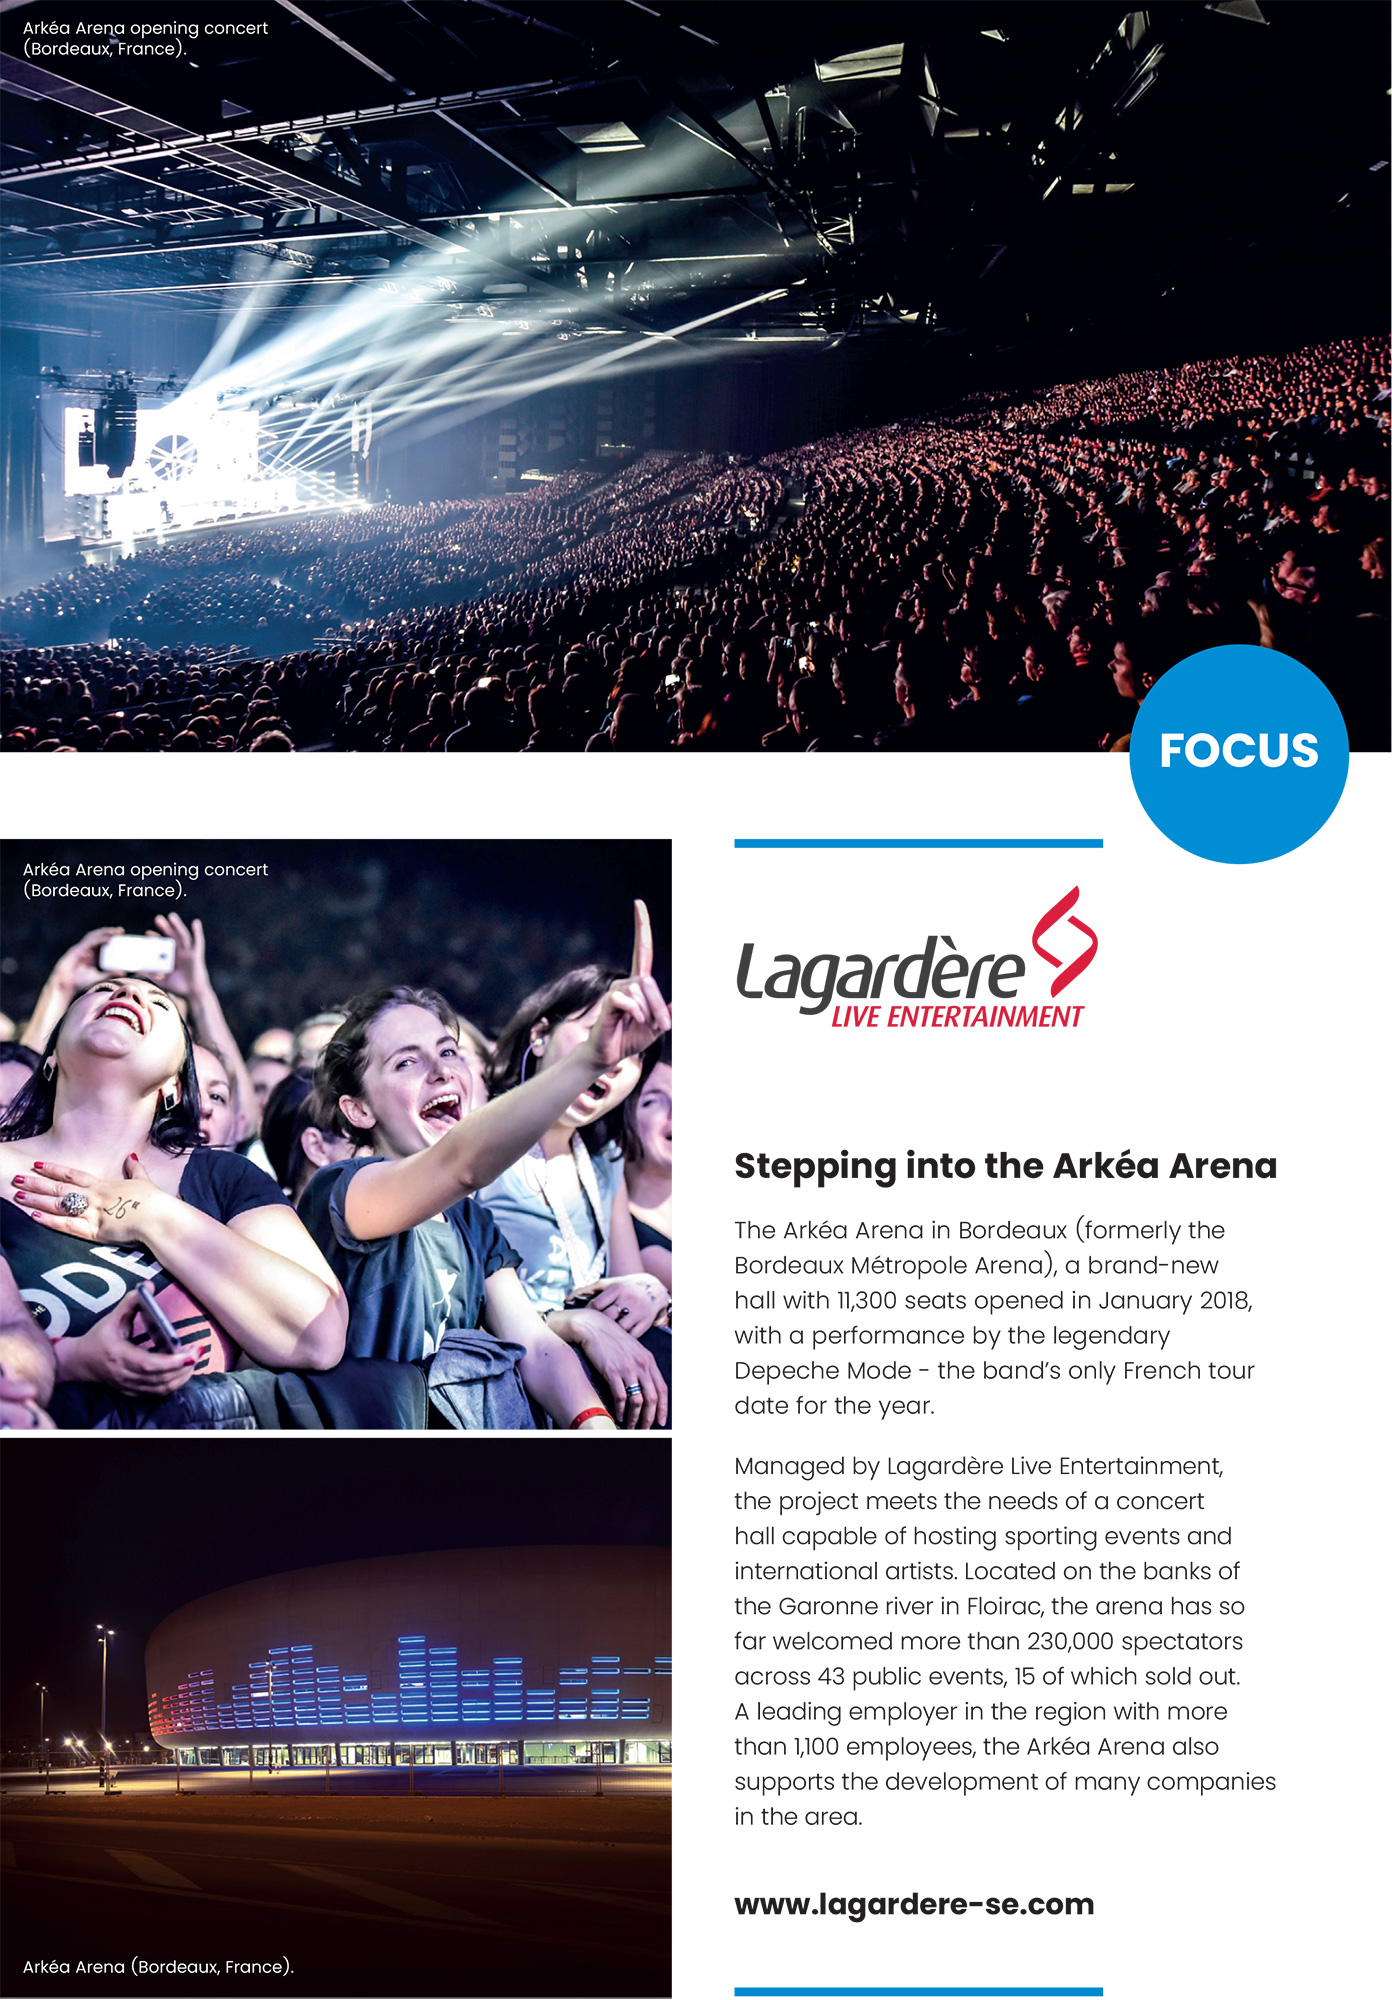 Lagardère Sports and Entertainment: Focus